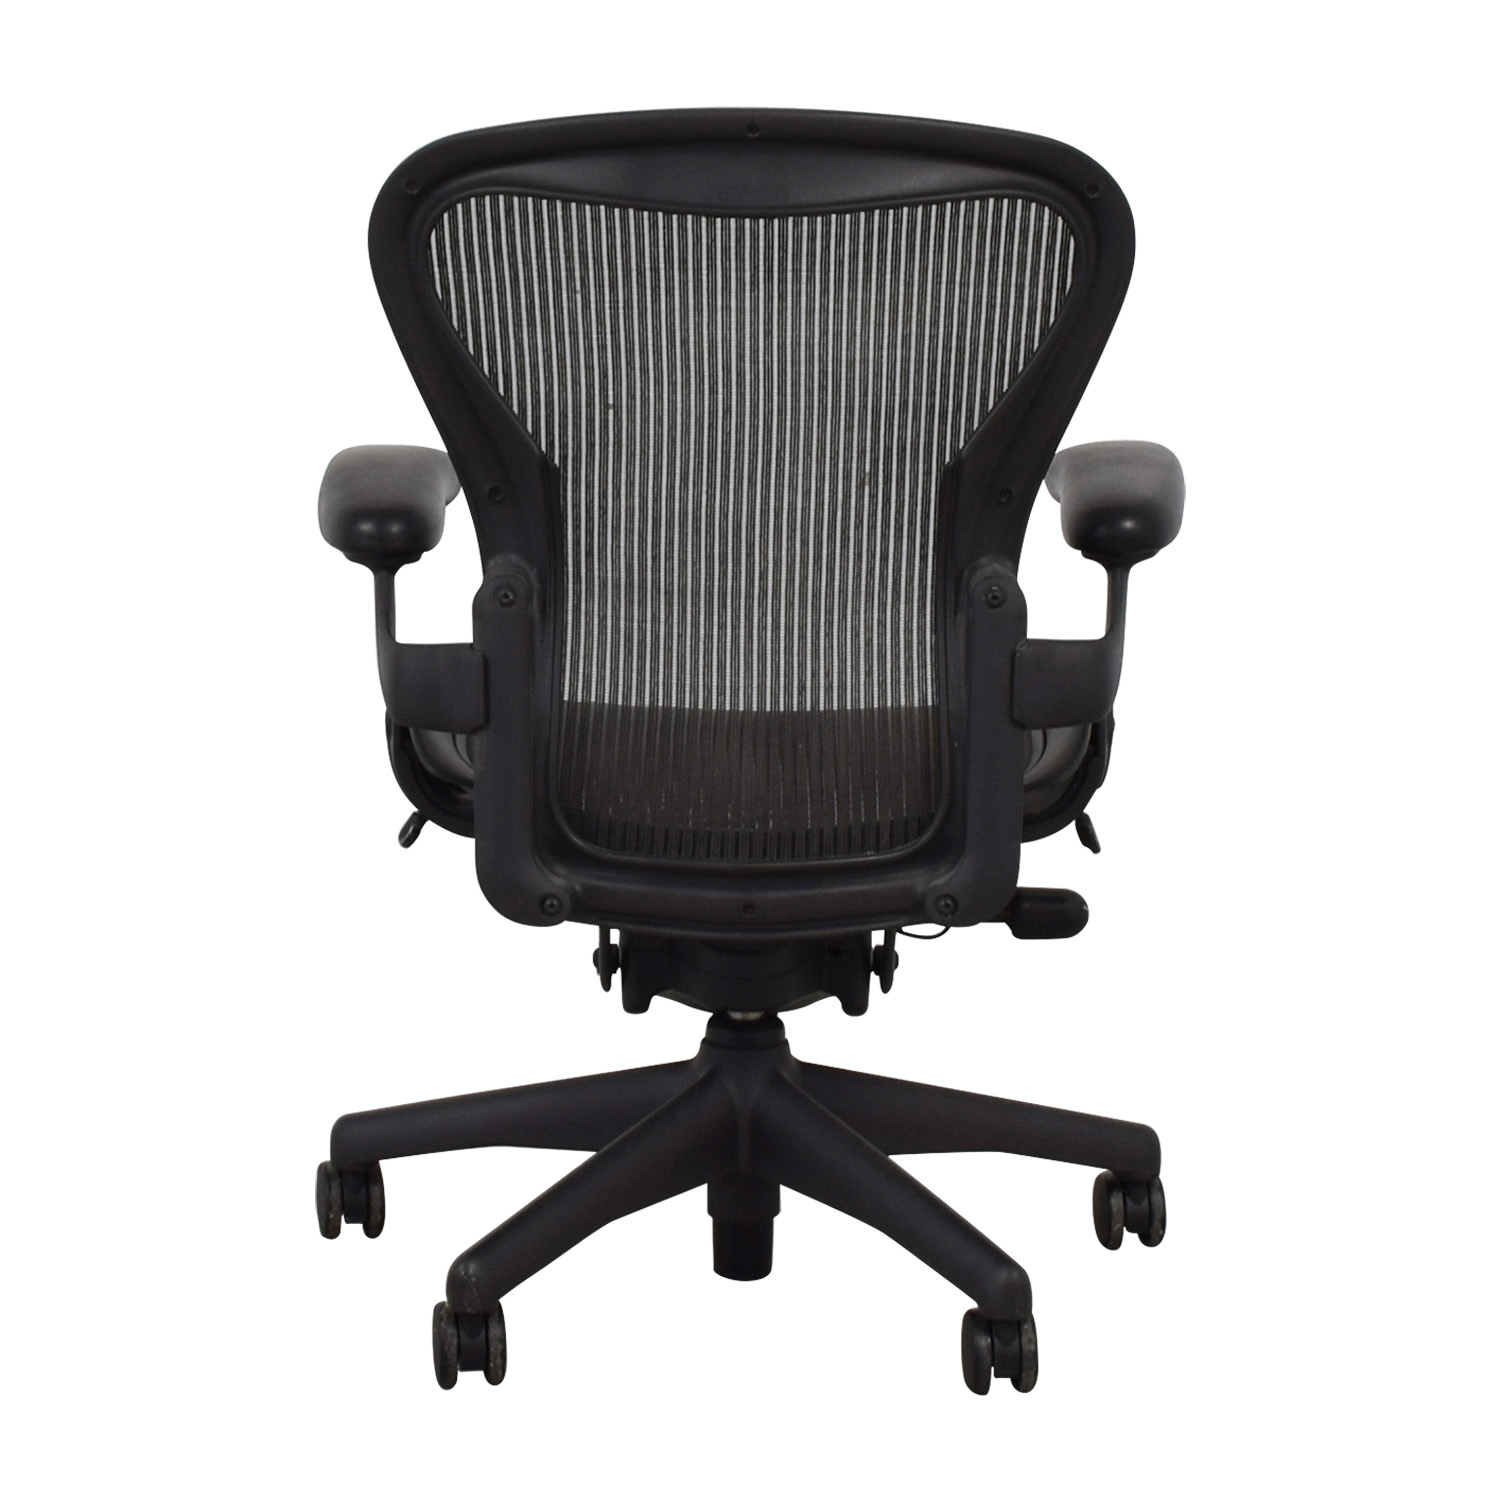 Graphite Chair Office Chair for sale